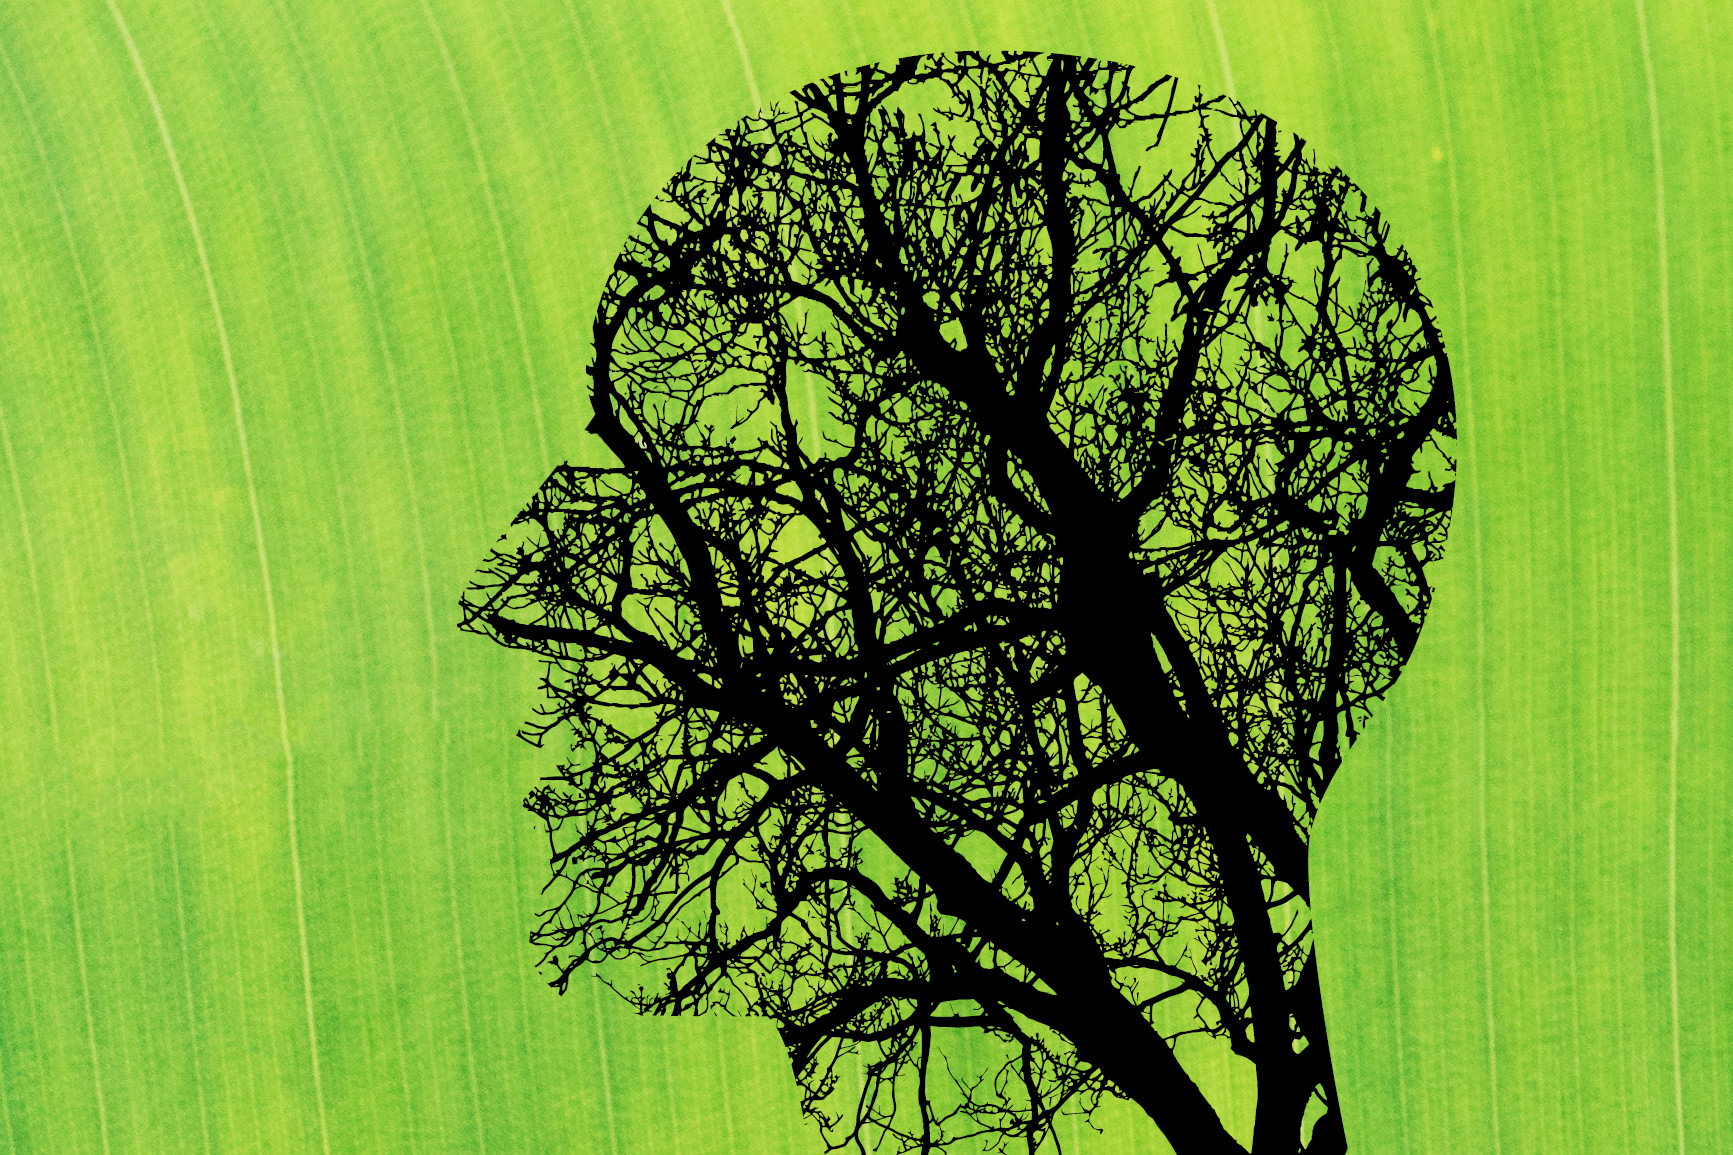 Green background with human head profile made of tree branches